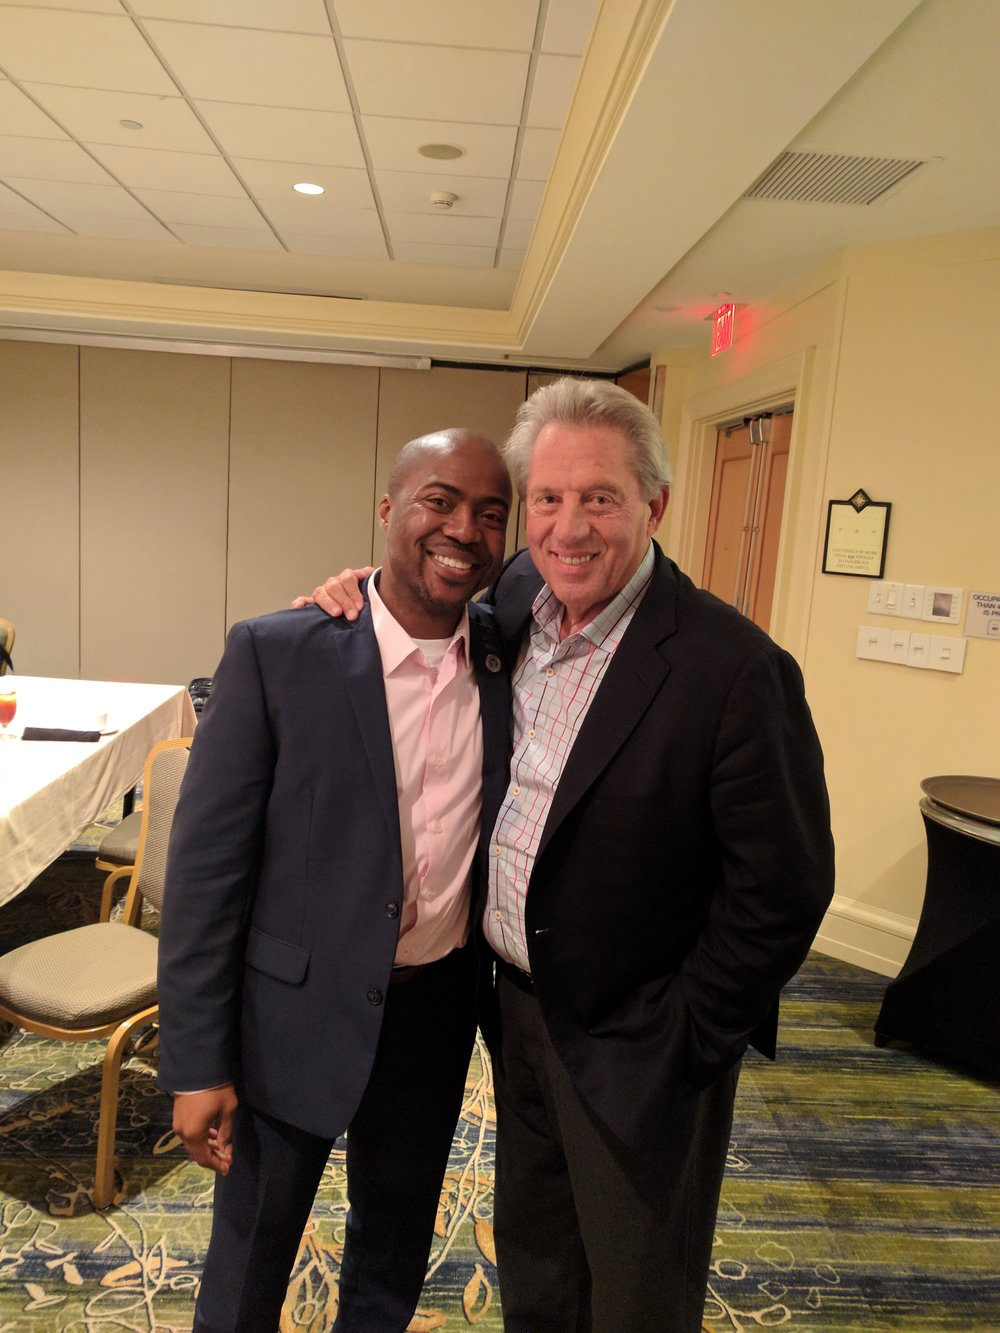 Quality Time With My Friend and Mentor, John C. Maxwell